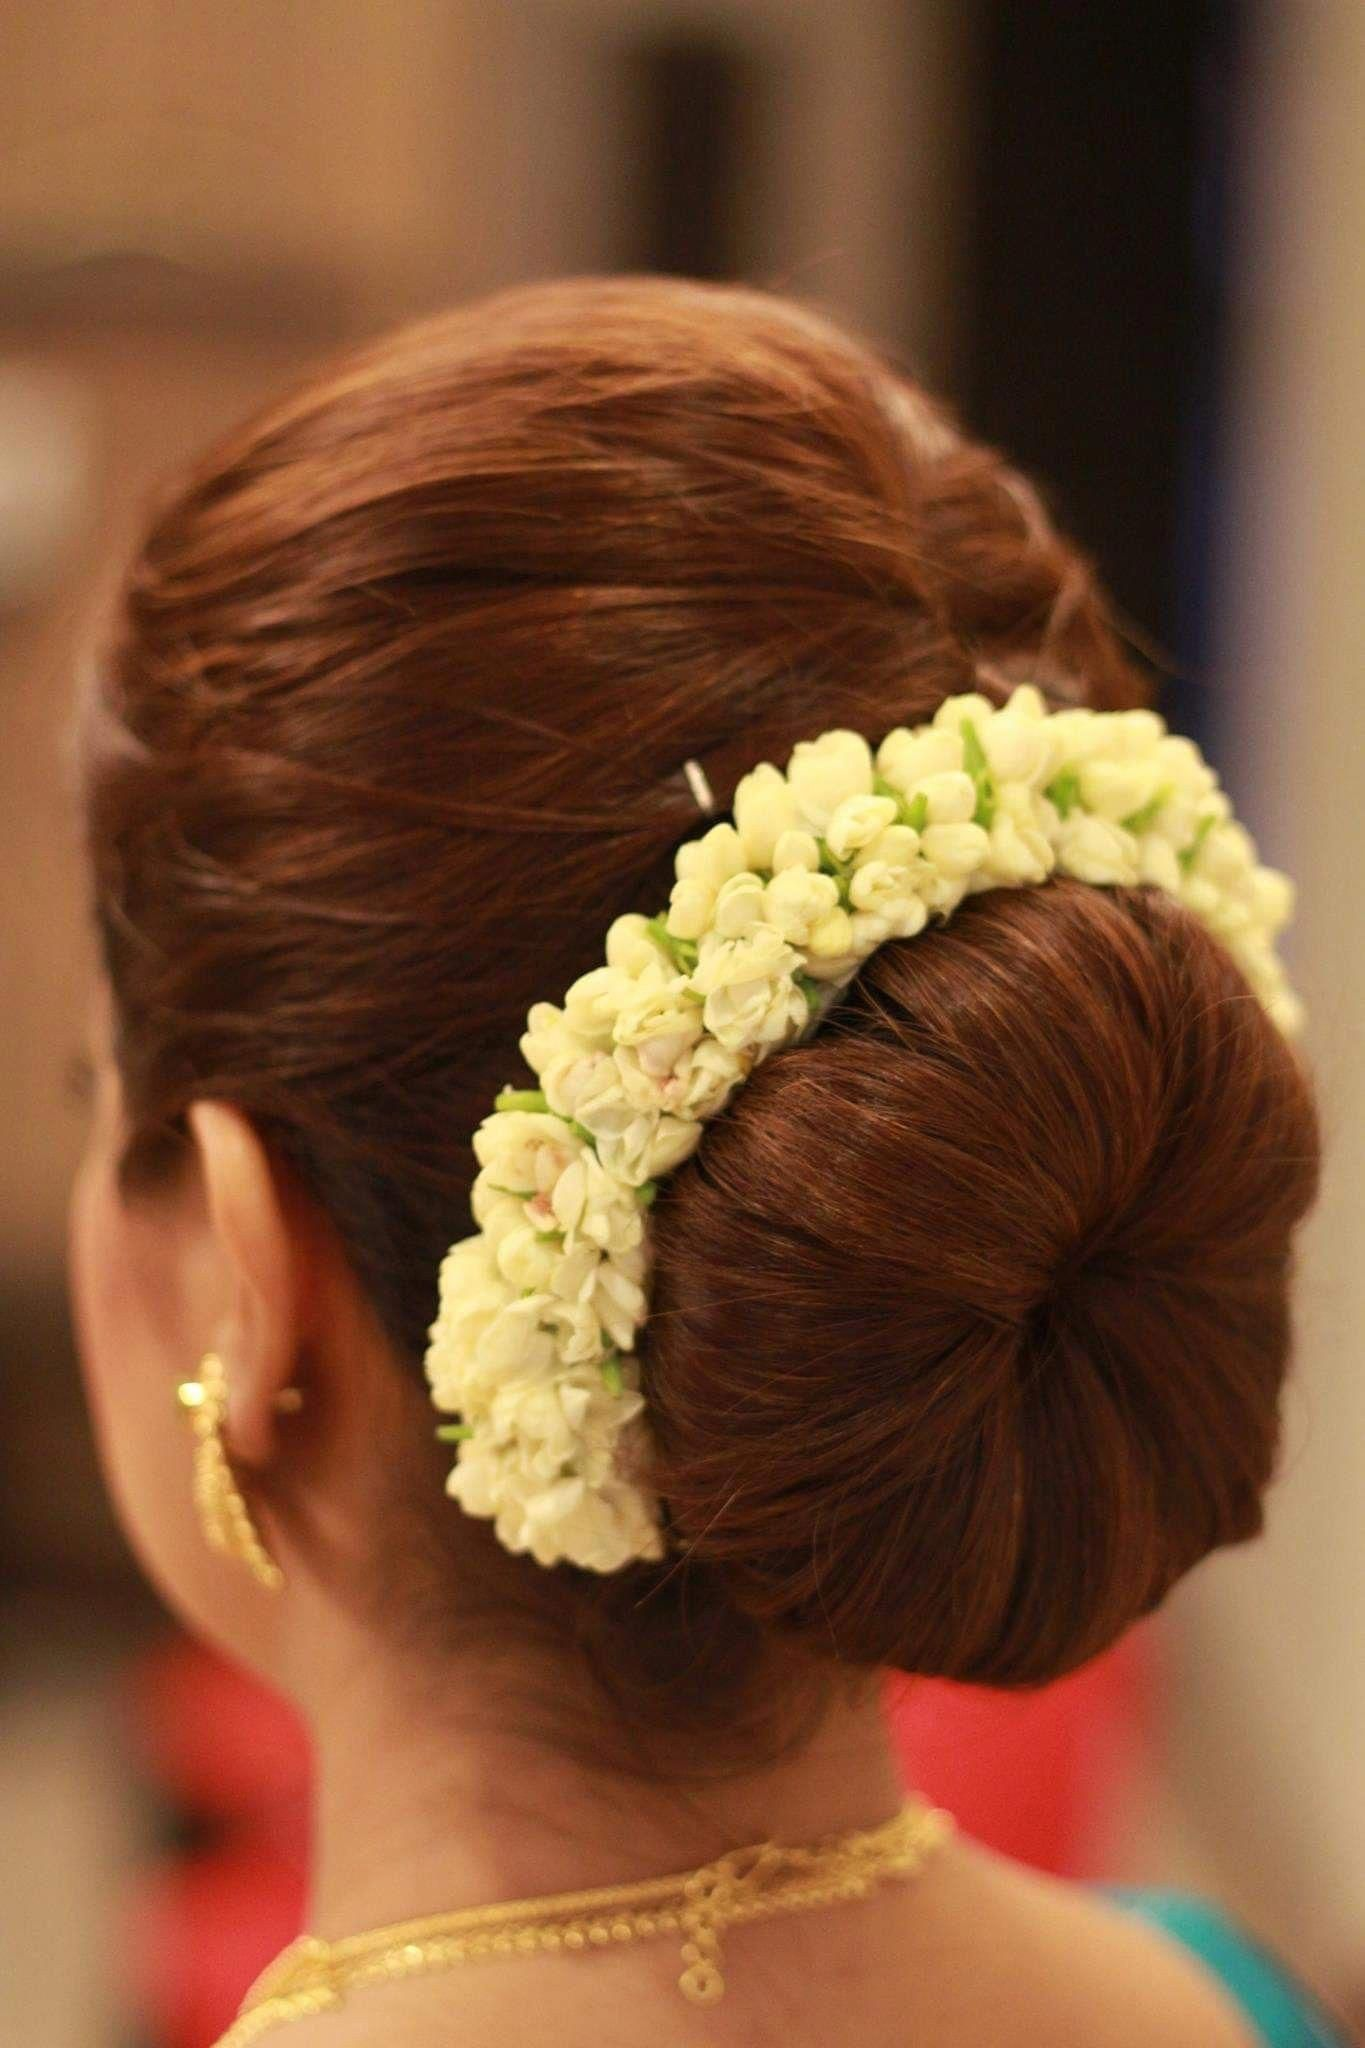 Best Long Hairstyles Easy Updos For Medium Layered Hair Braided Formal Hair 20190312 Bridal Hair Buns Long Hair Styles Medium Layered Hair